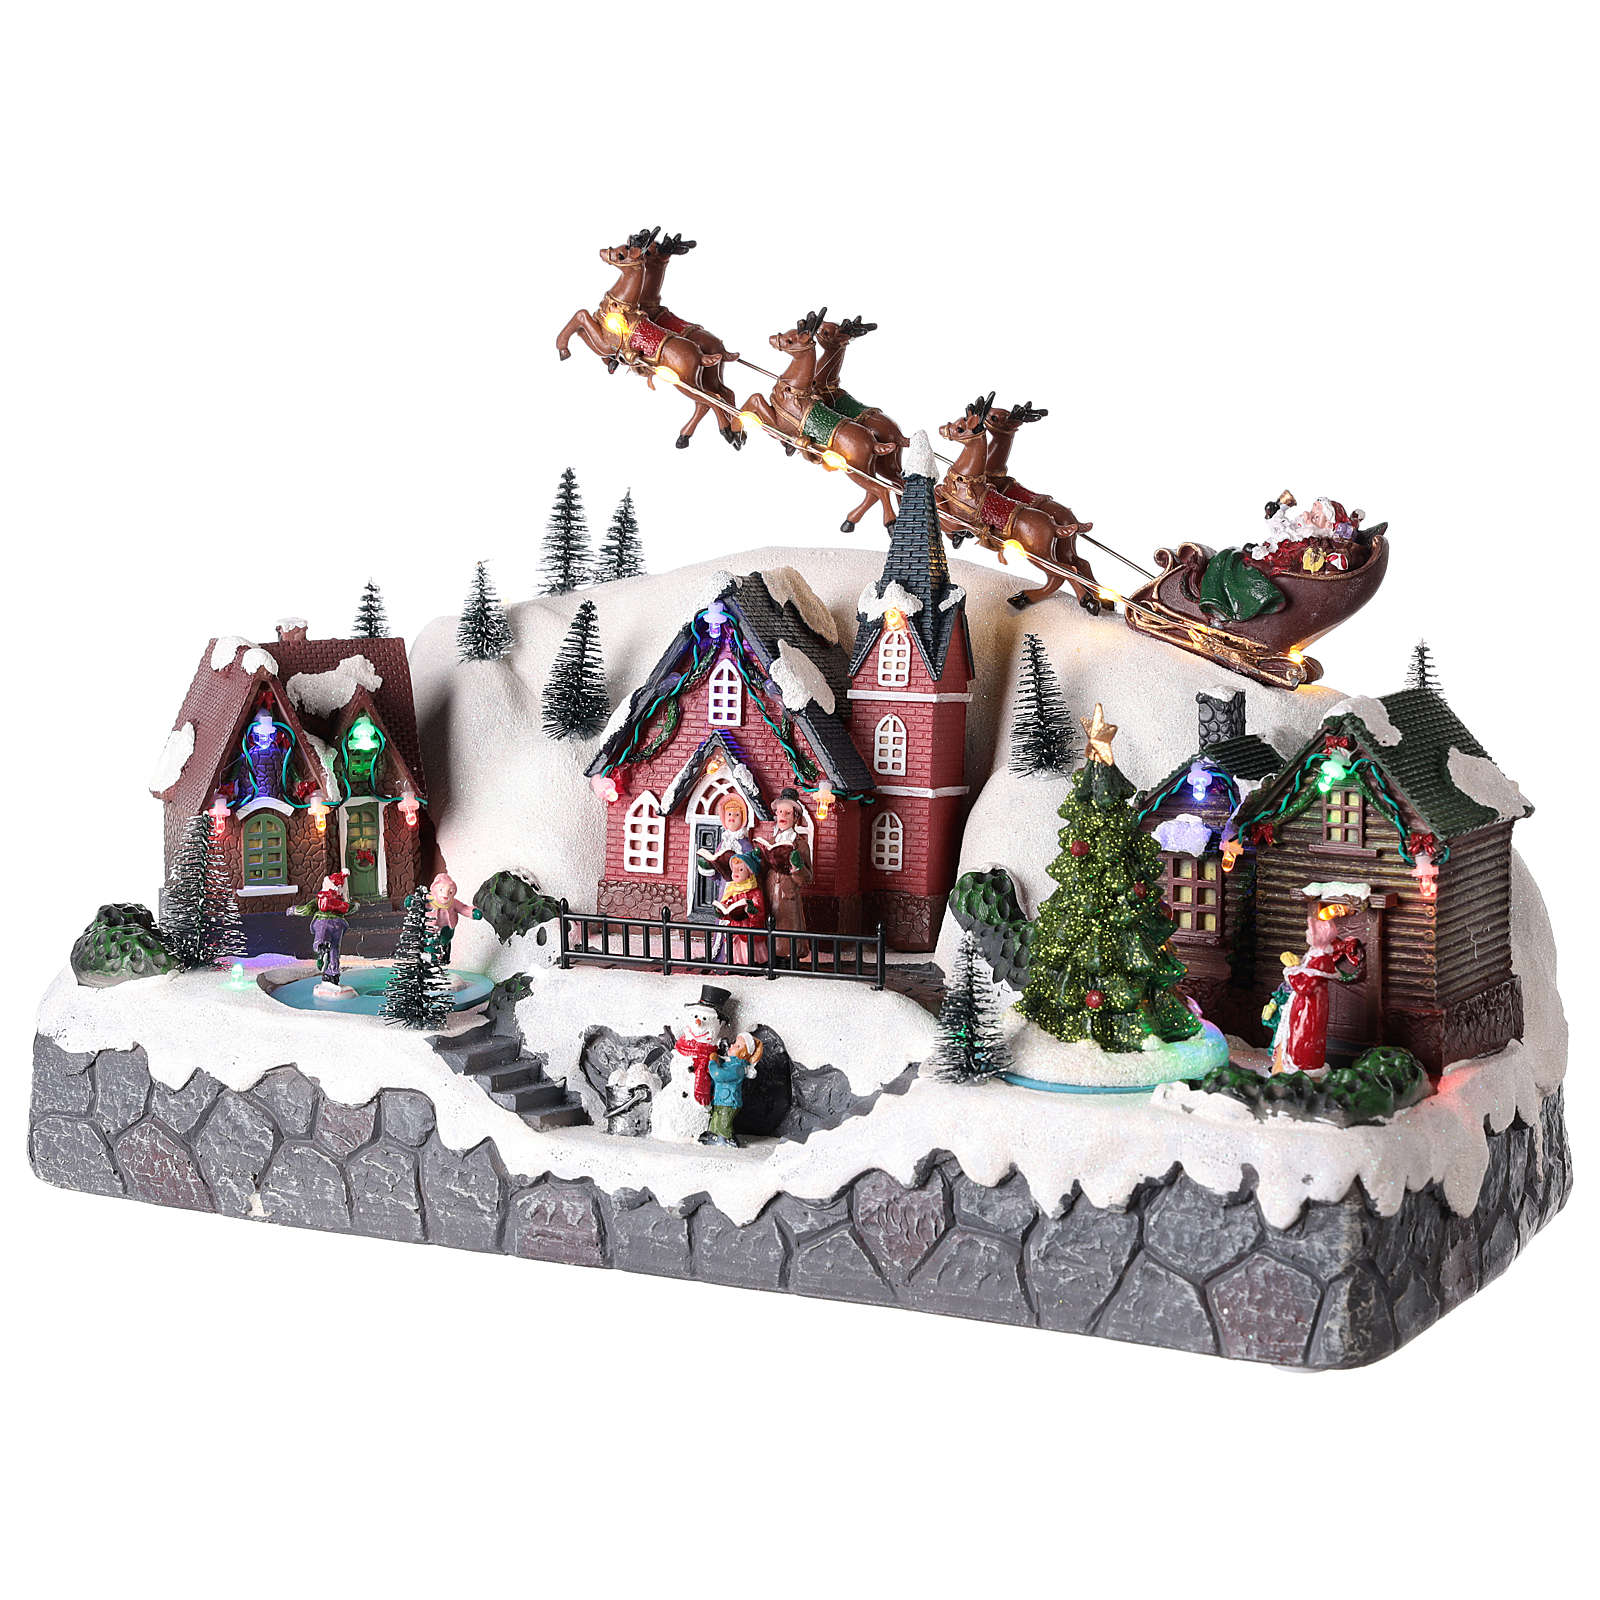 Christmas village with Santa Claus on a moving sleigh 25x40x20 cm 3